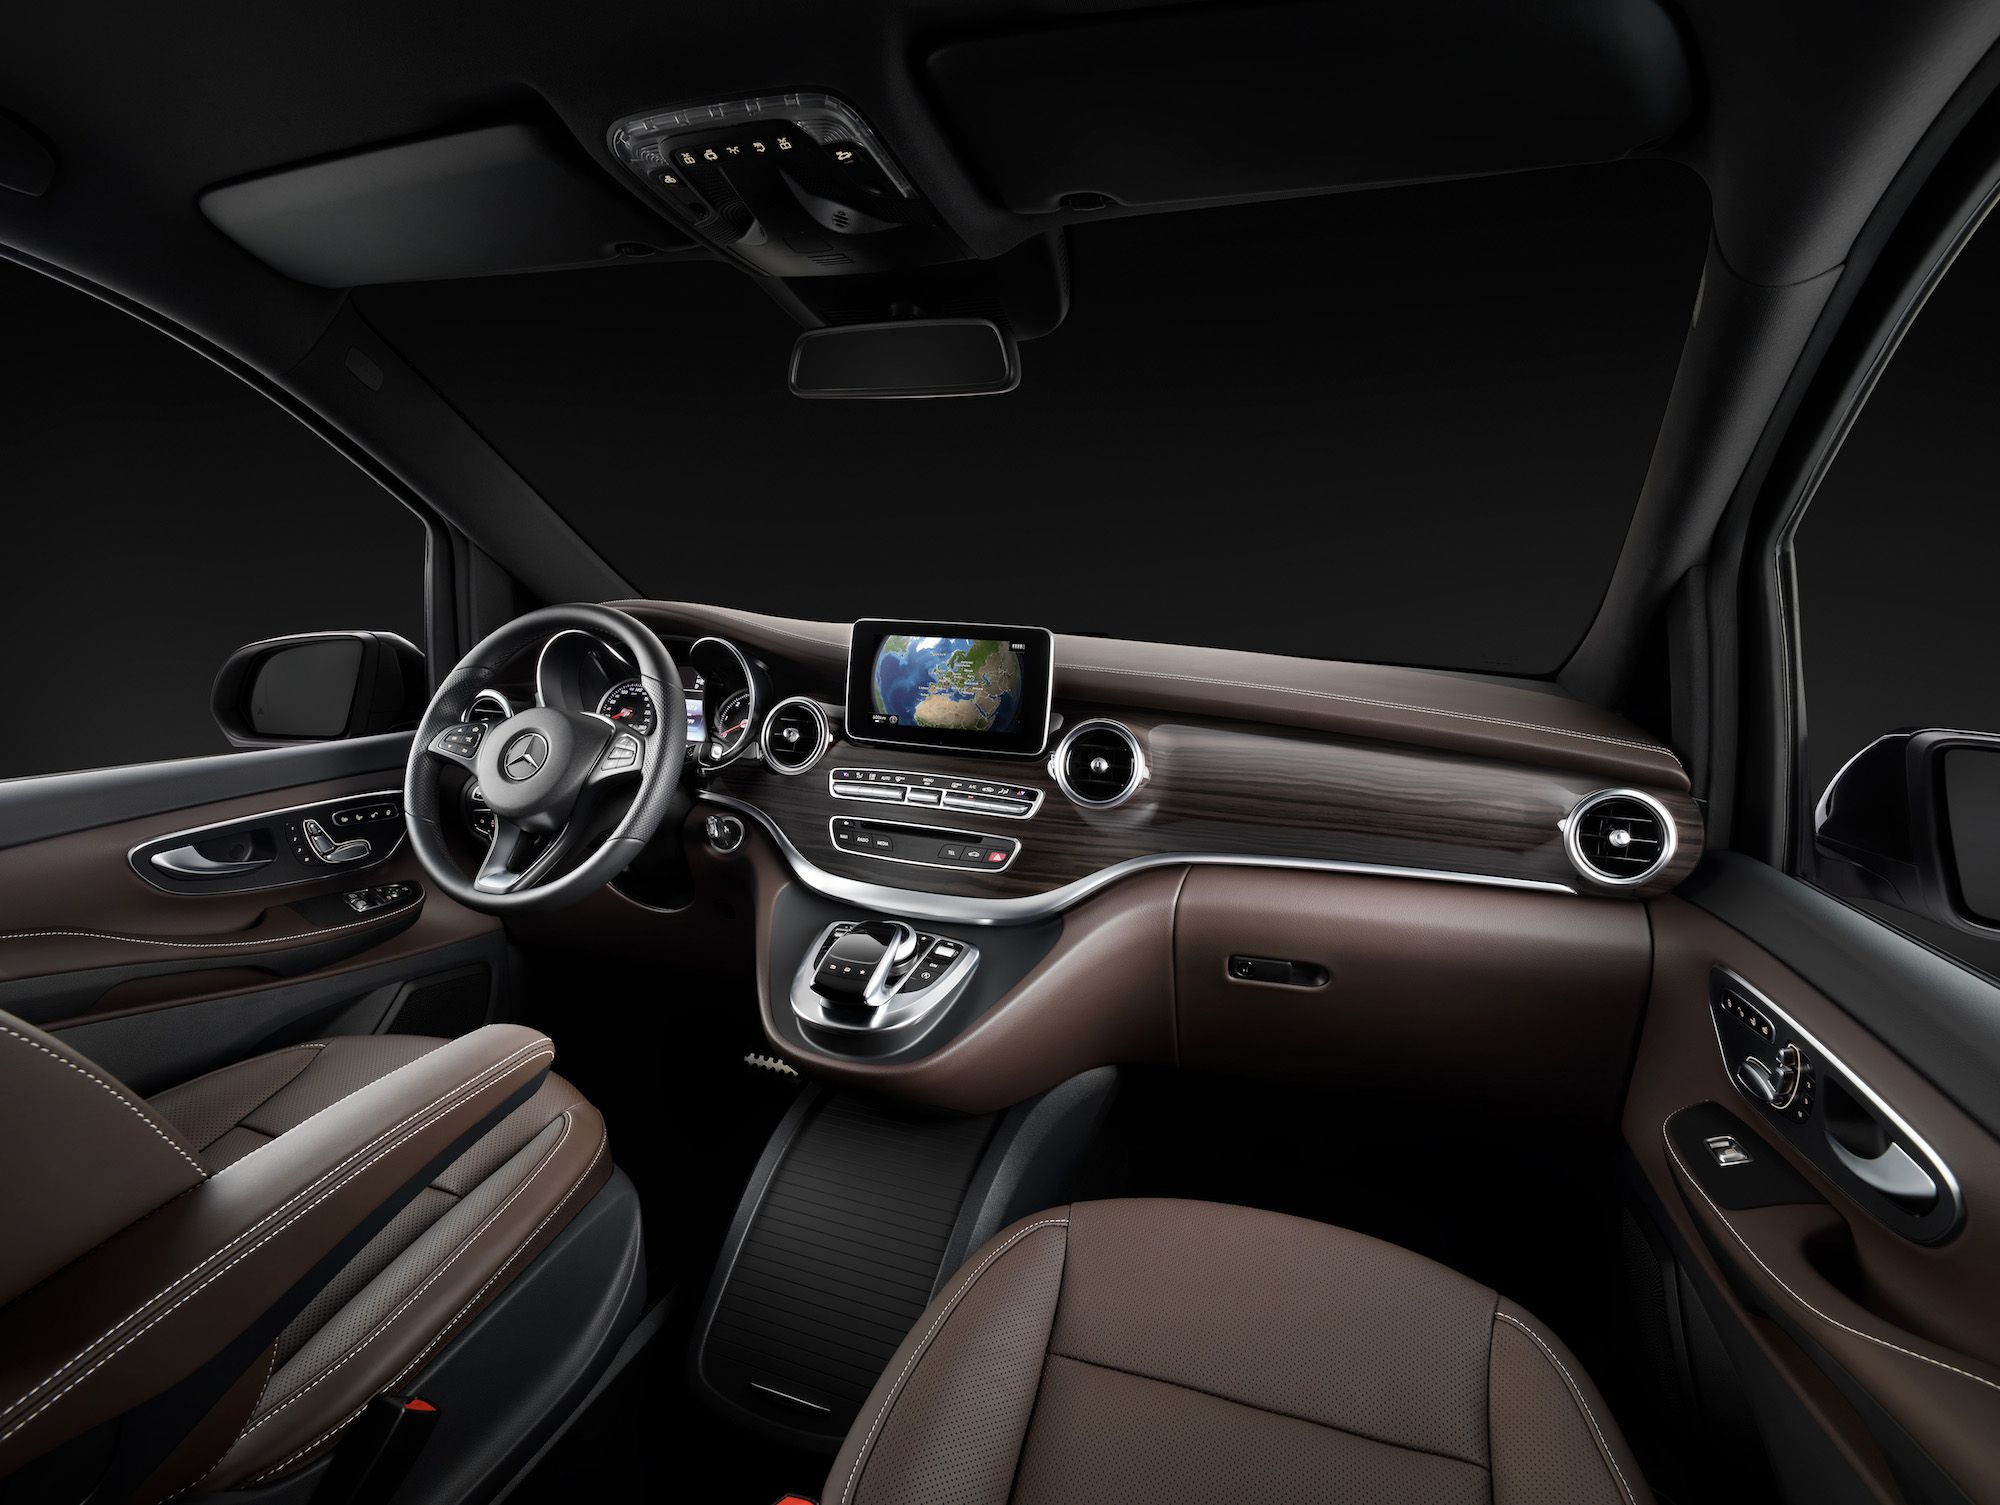 Mercedes benz new v class w447 interior revealed mbhess mbcars